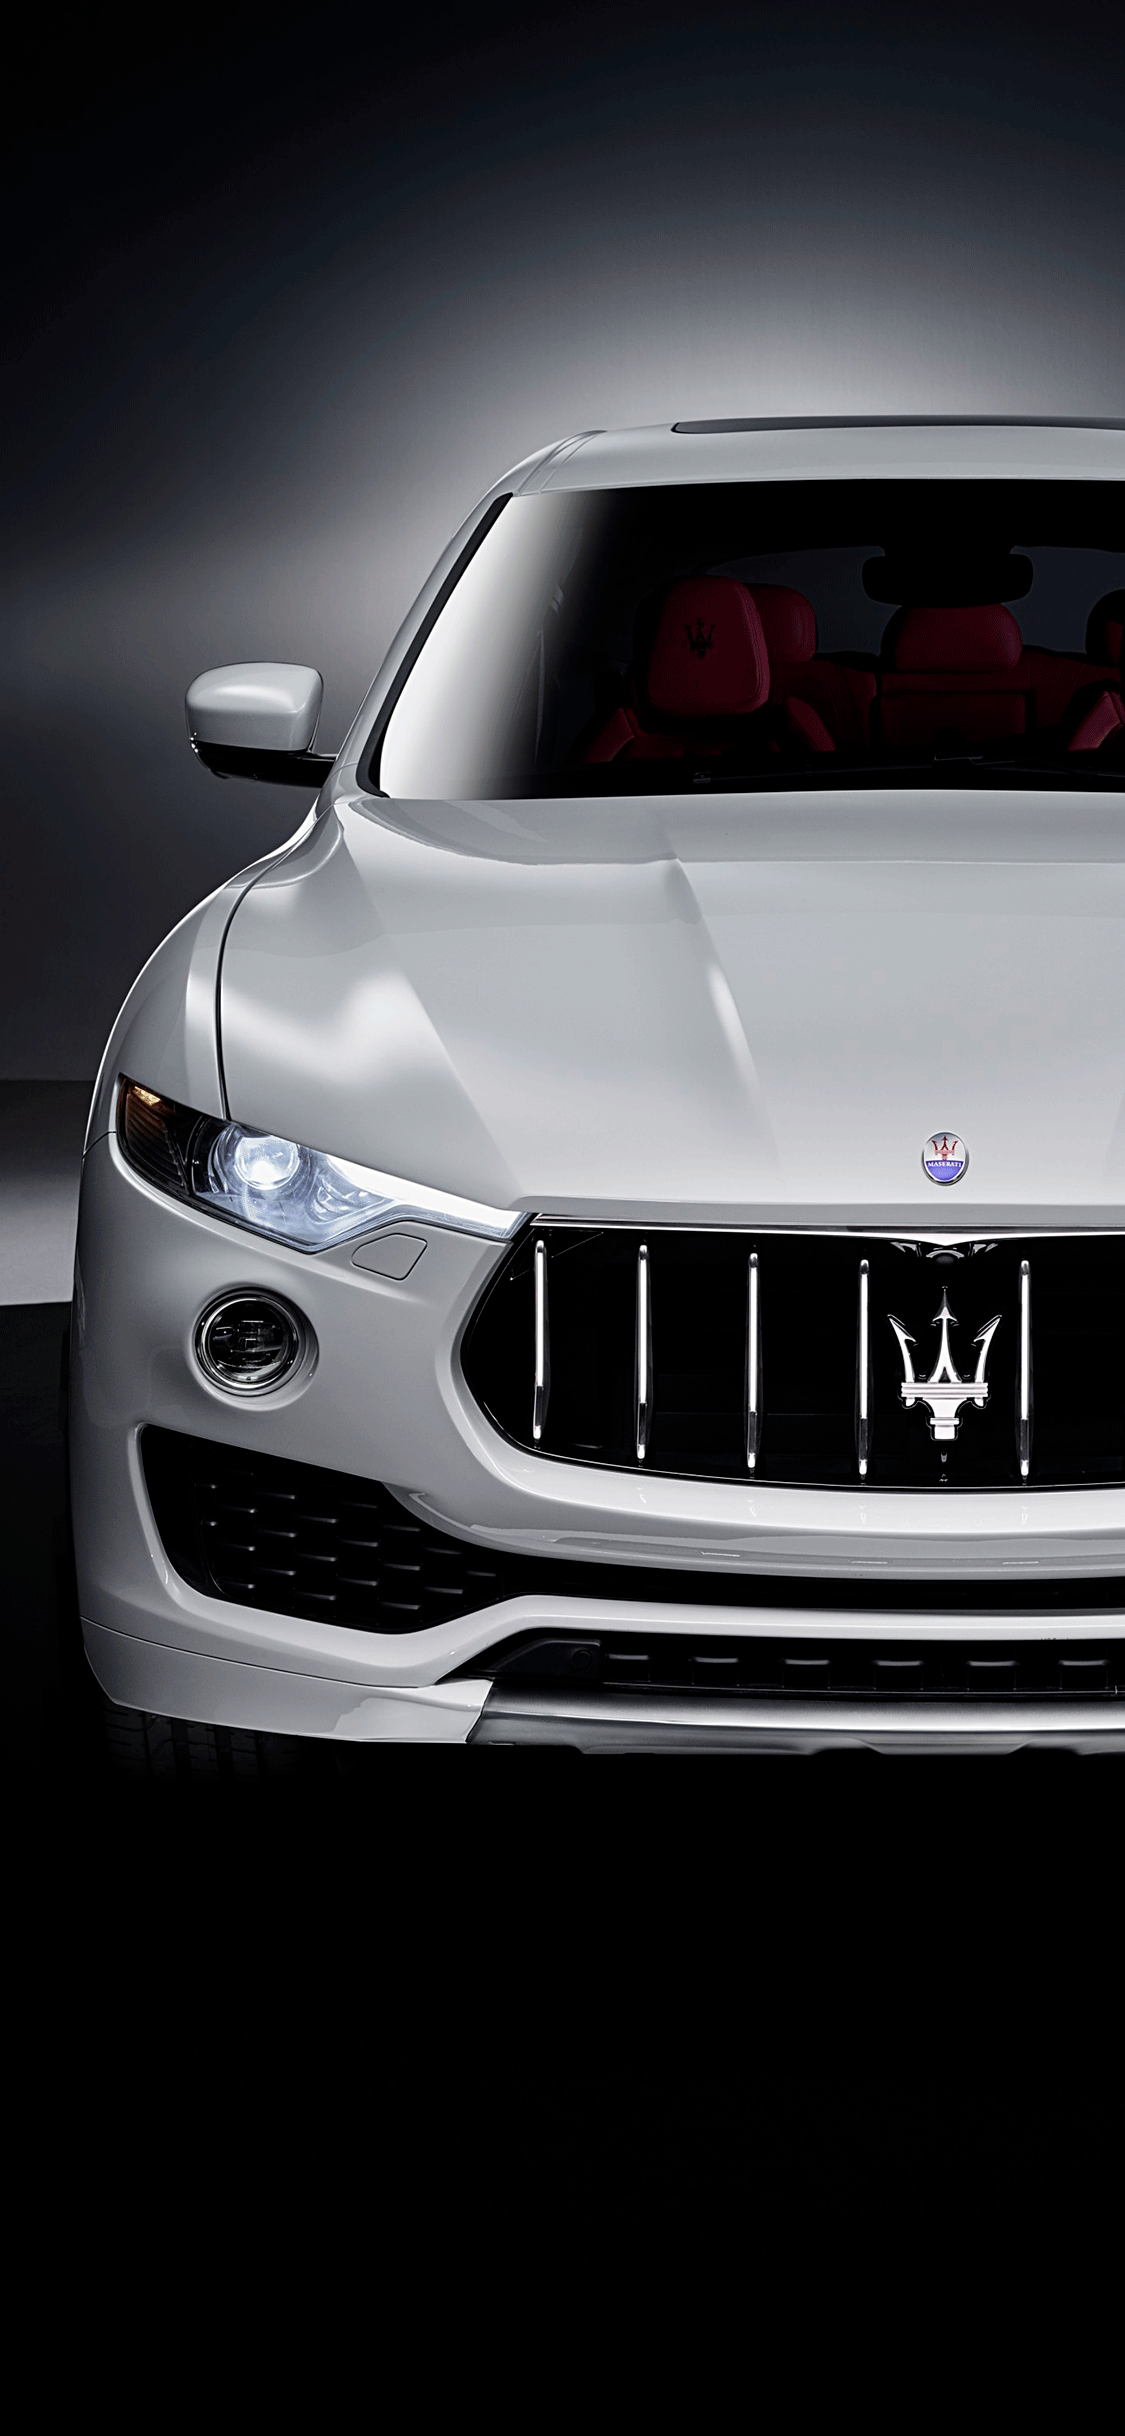 iPhone wallpaper maserati levante Fonds d'écran iPhone du 26/06/2018